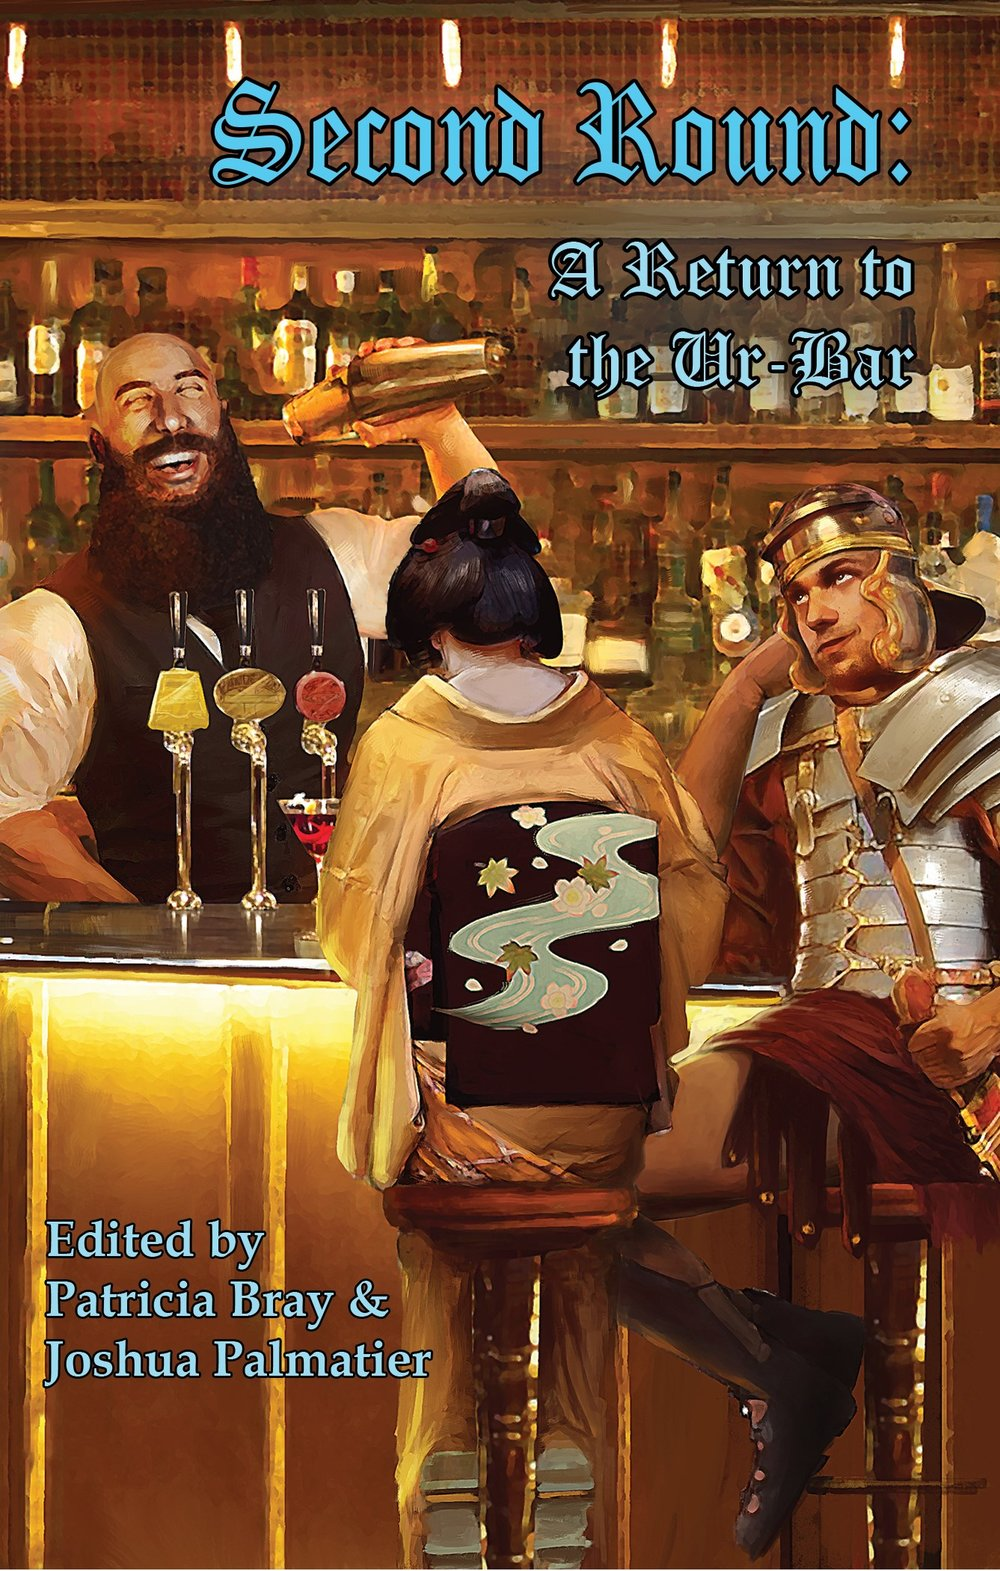 Second Round: A Return to the Ur-Bar, 2018